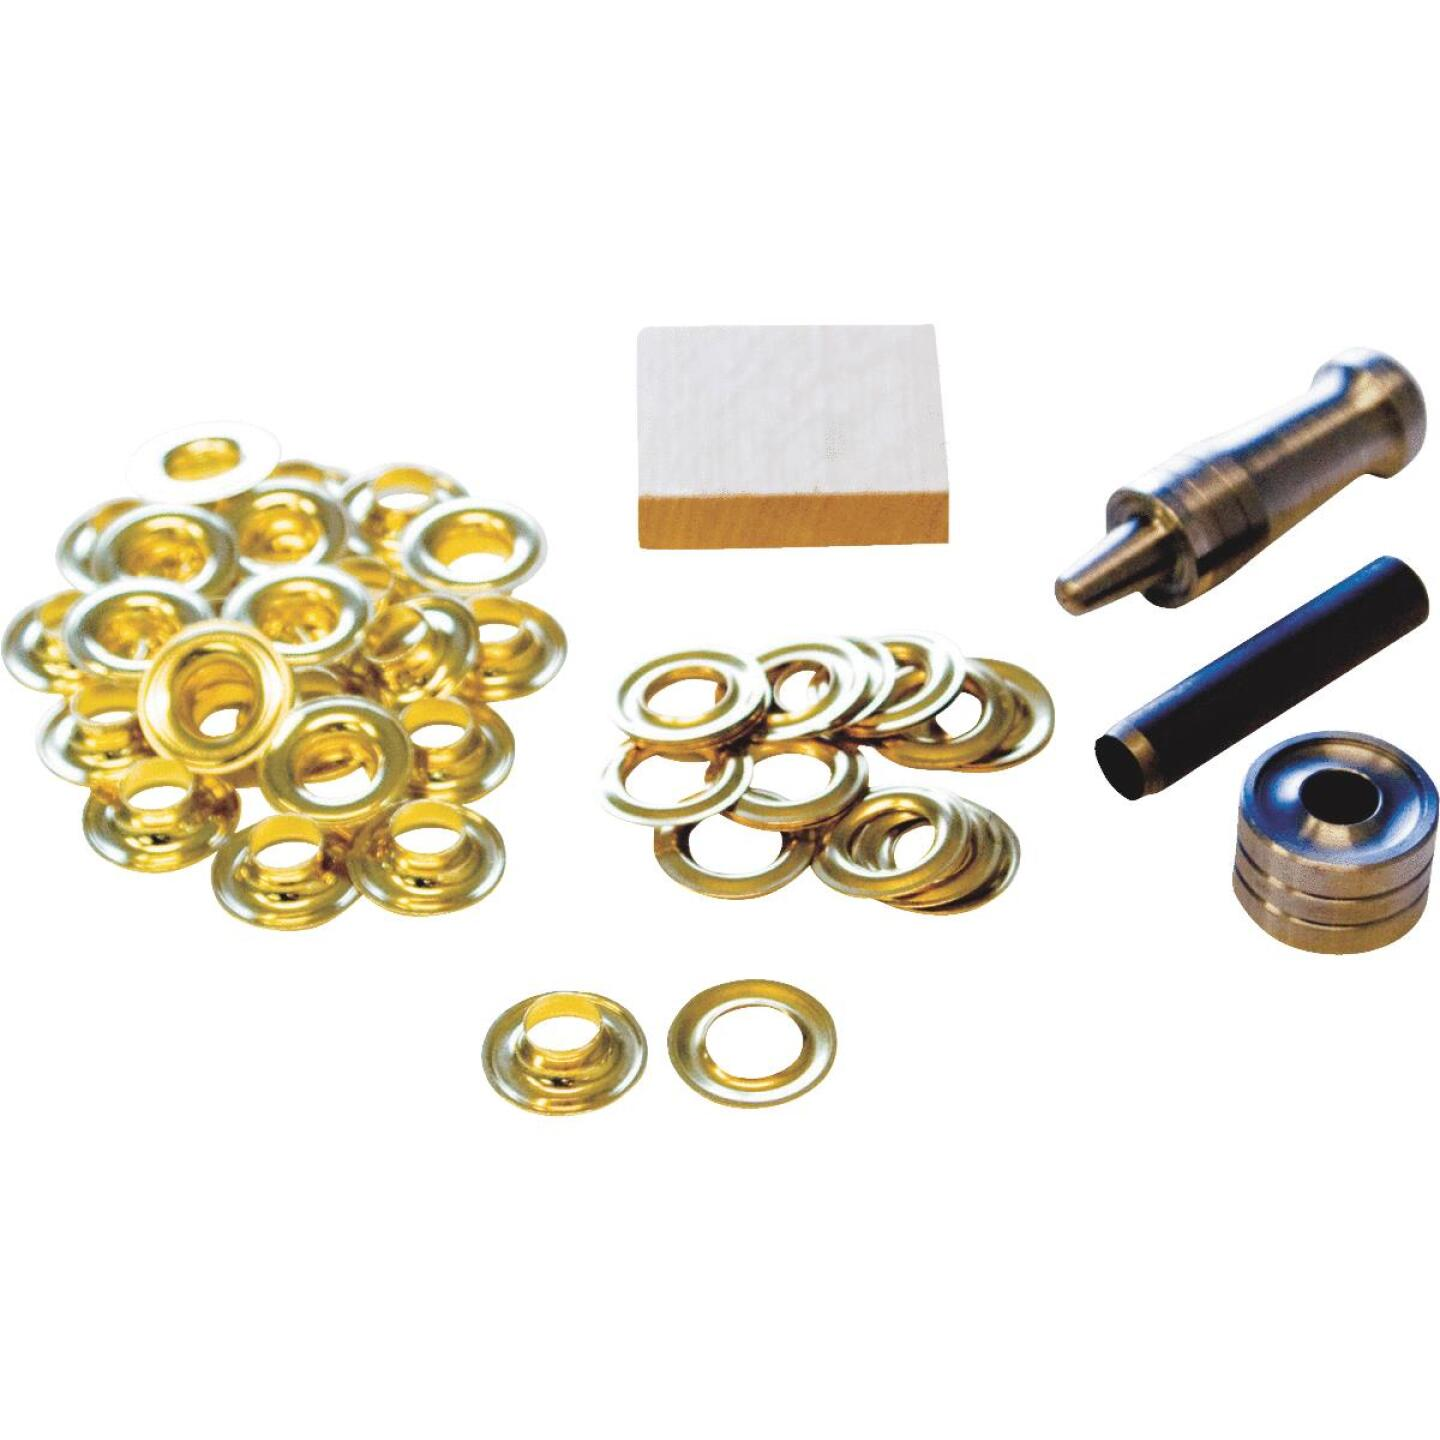 Lord & Hodge 3/8 In. Brass Grommet Kit Image 1